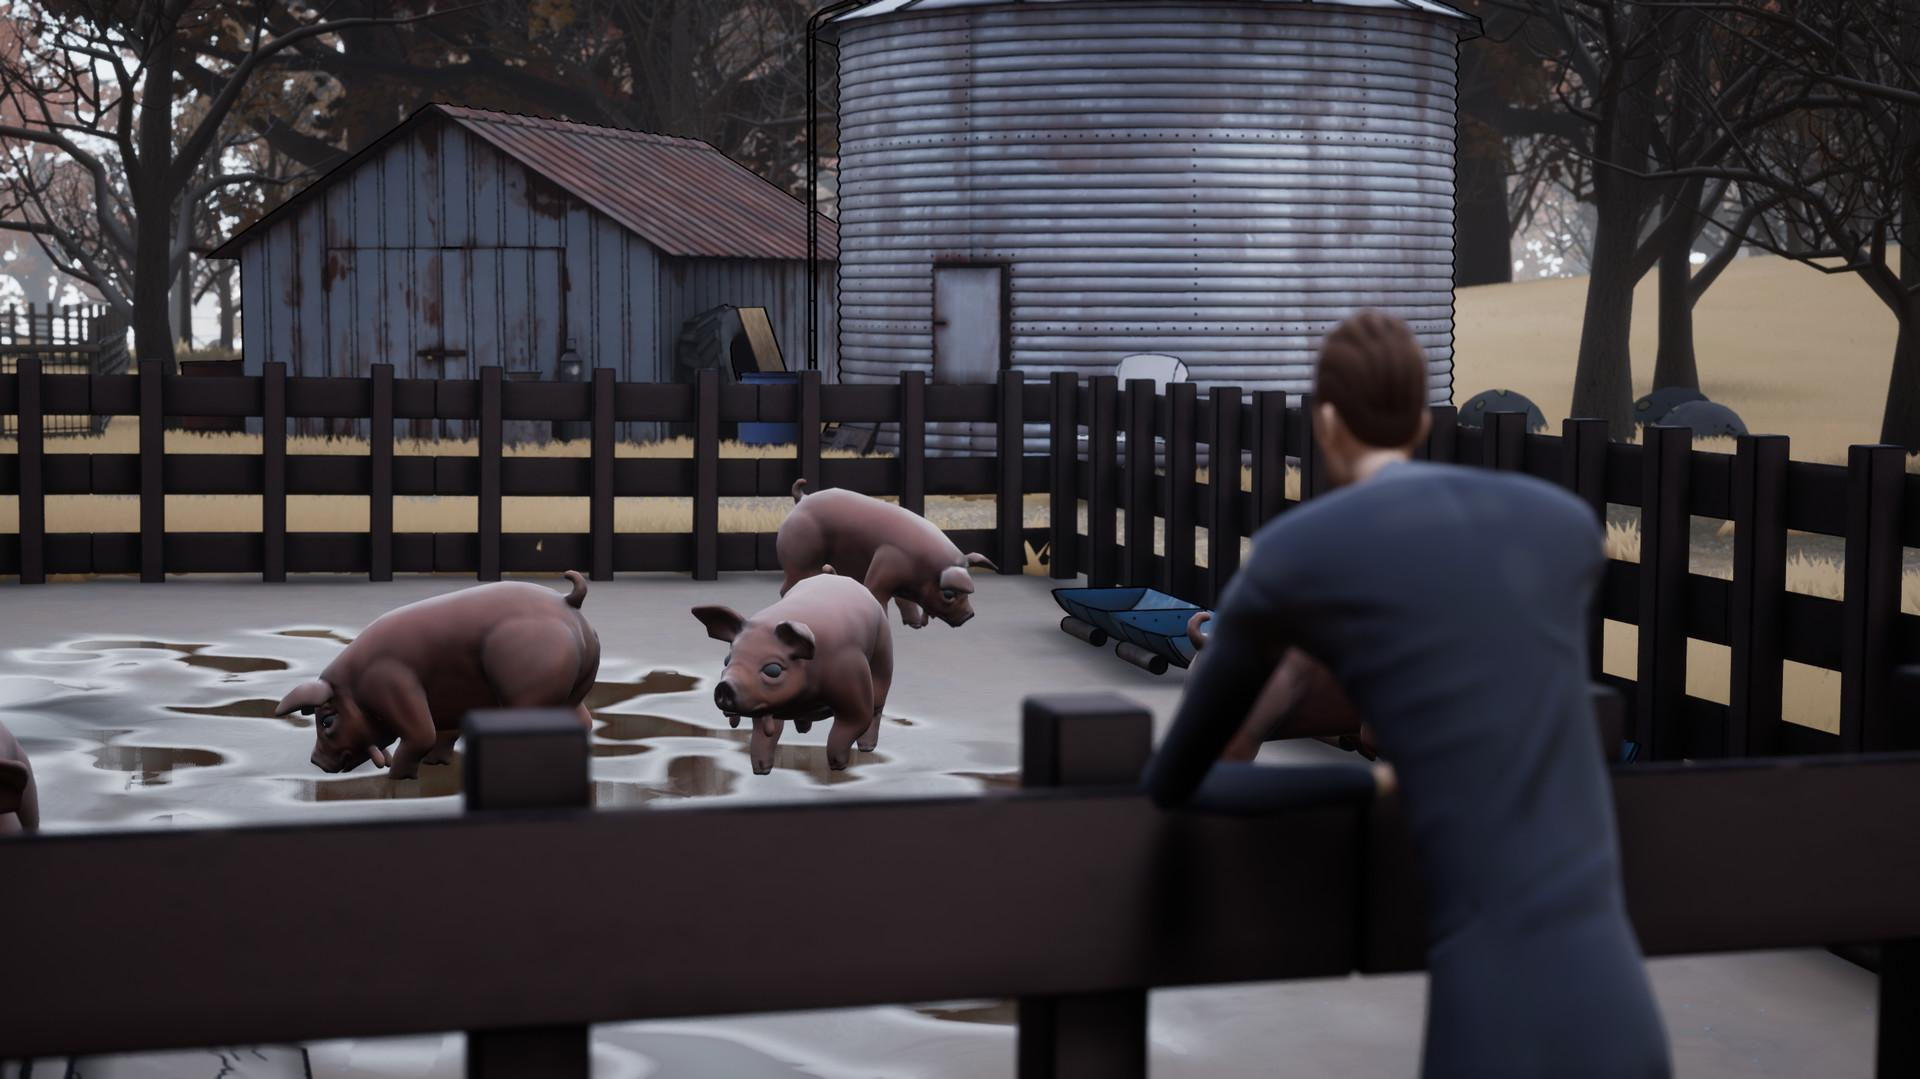 Adioa release date, gameplay, available modes